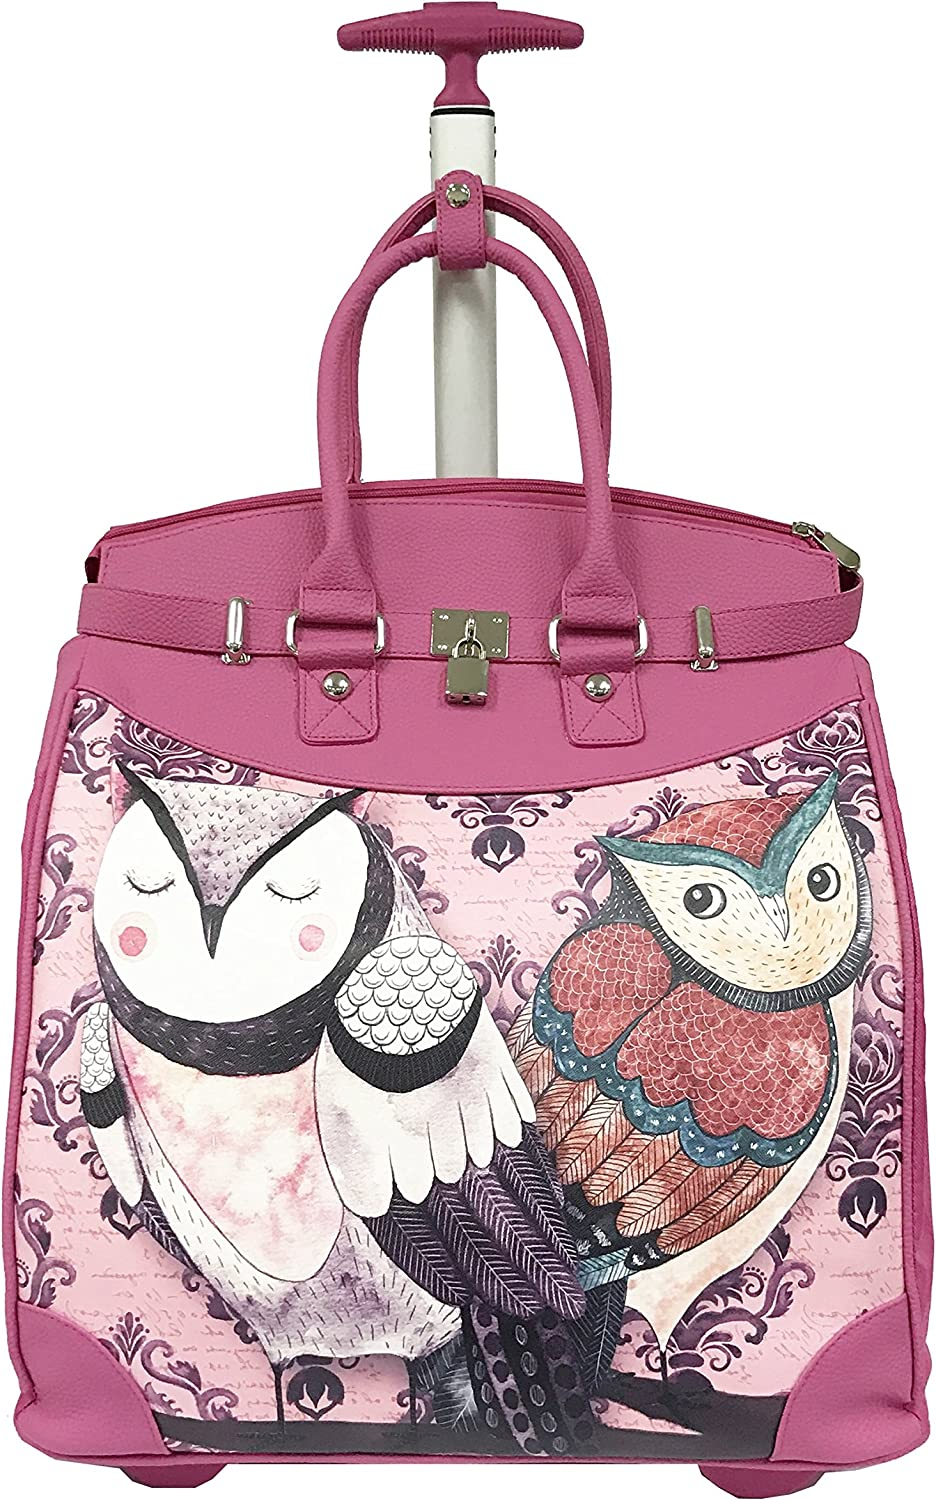 Graphic Adorable Animal Lovers Patterned Pink Size 14 Fashionable Beige Lovely Forest Couple Owls Design Carry On Rolling Foldable Laptop Tote Multi Compartment Checkpoint Friendly Travel Bag